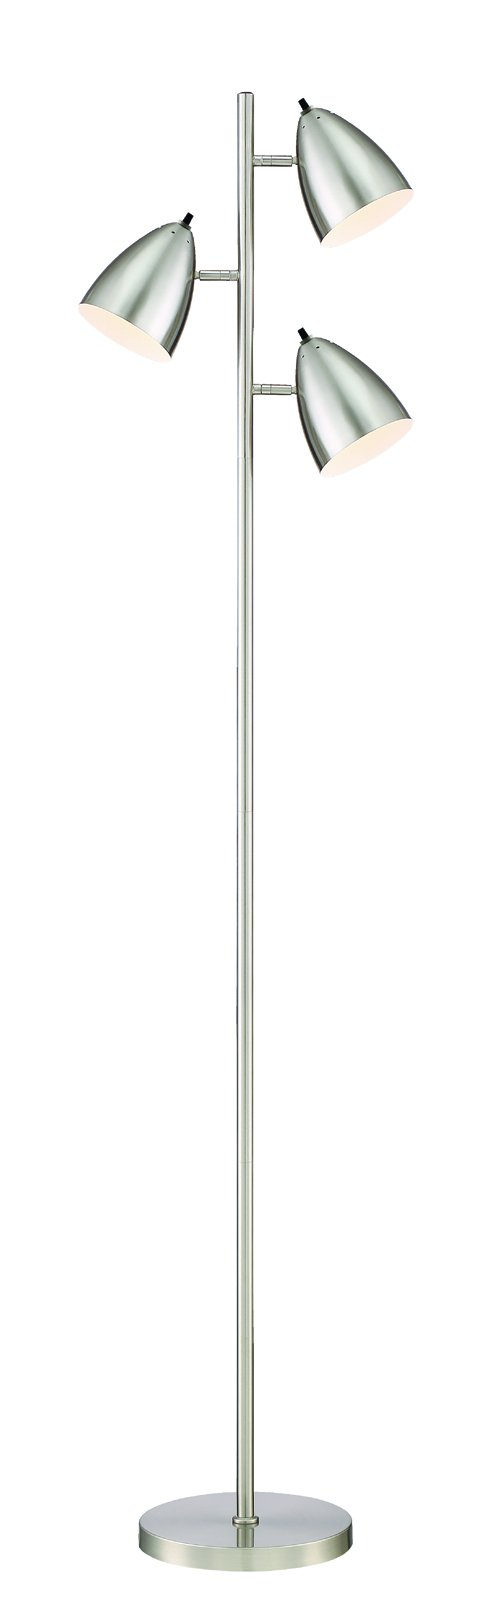 HomeFocus 3-Light Tree Floor Lamp Light,Living Room Floor Lamp Light,Bedroom Floor Lamp Light,Metal,Satin Nickel,Suitable for Home and Hotel. (Satin Nickel)